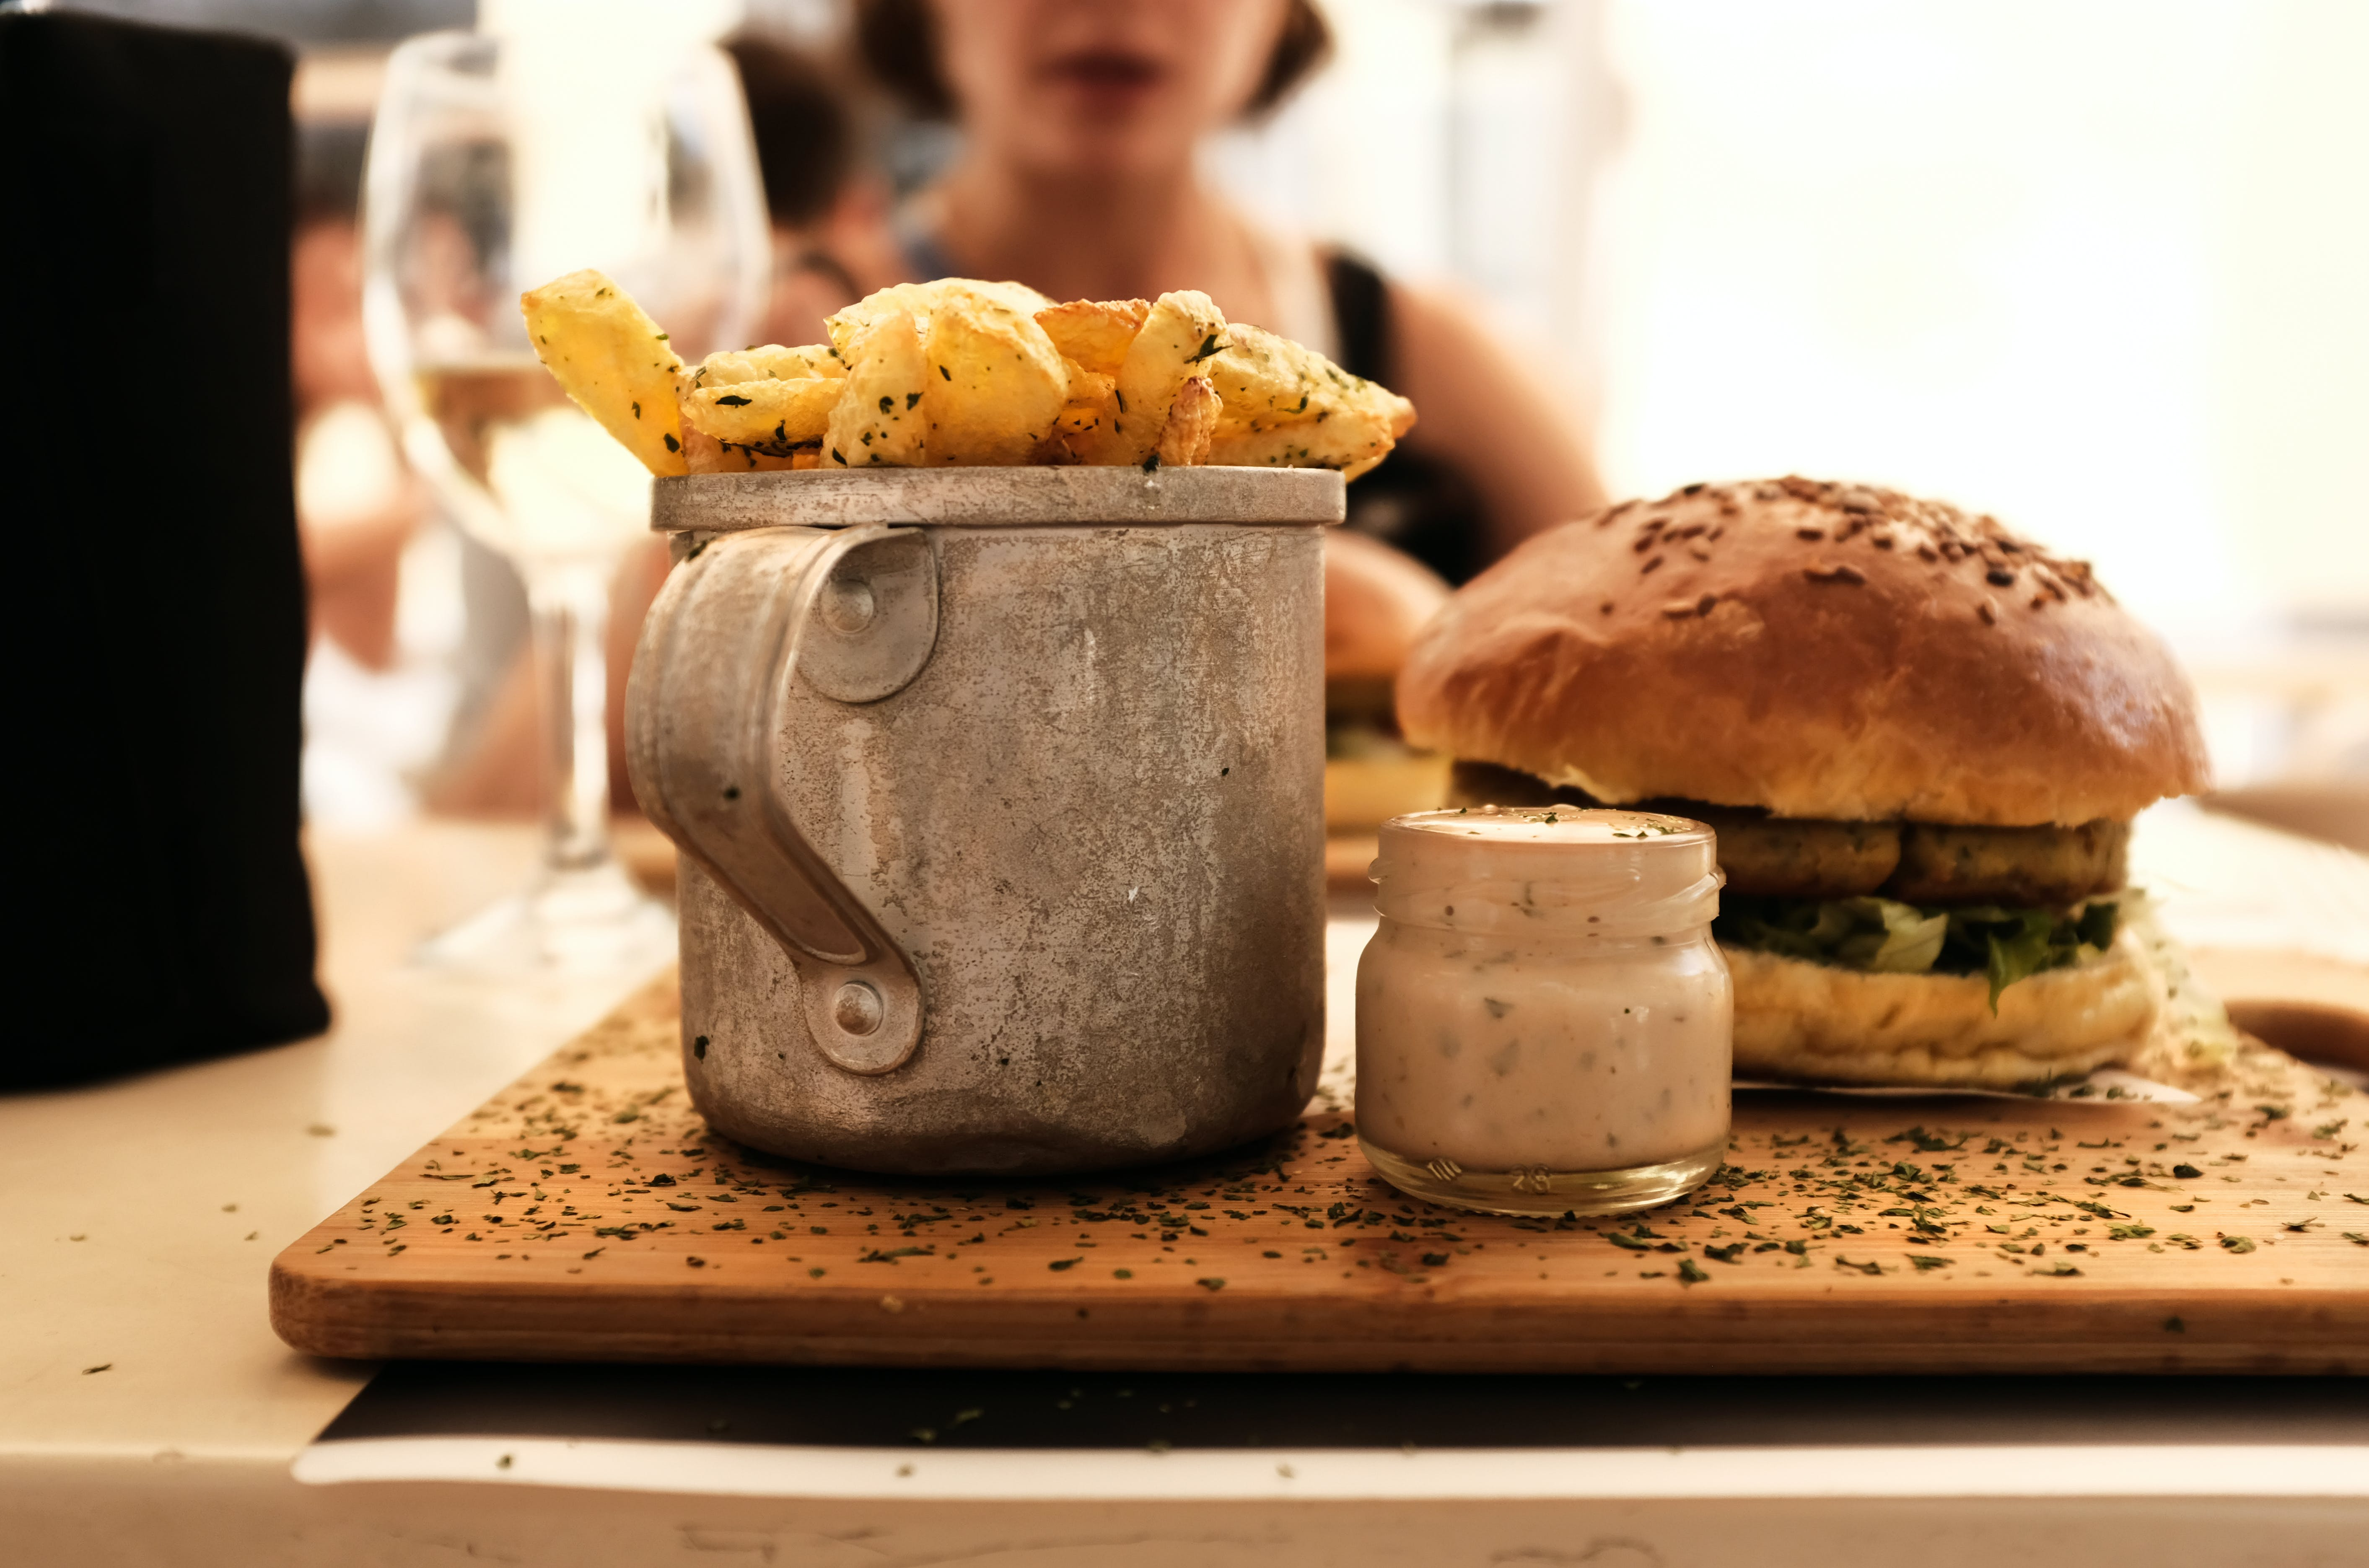 Shallow Focus Photography of Hamburger Beside Container